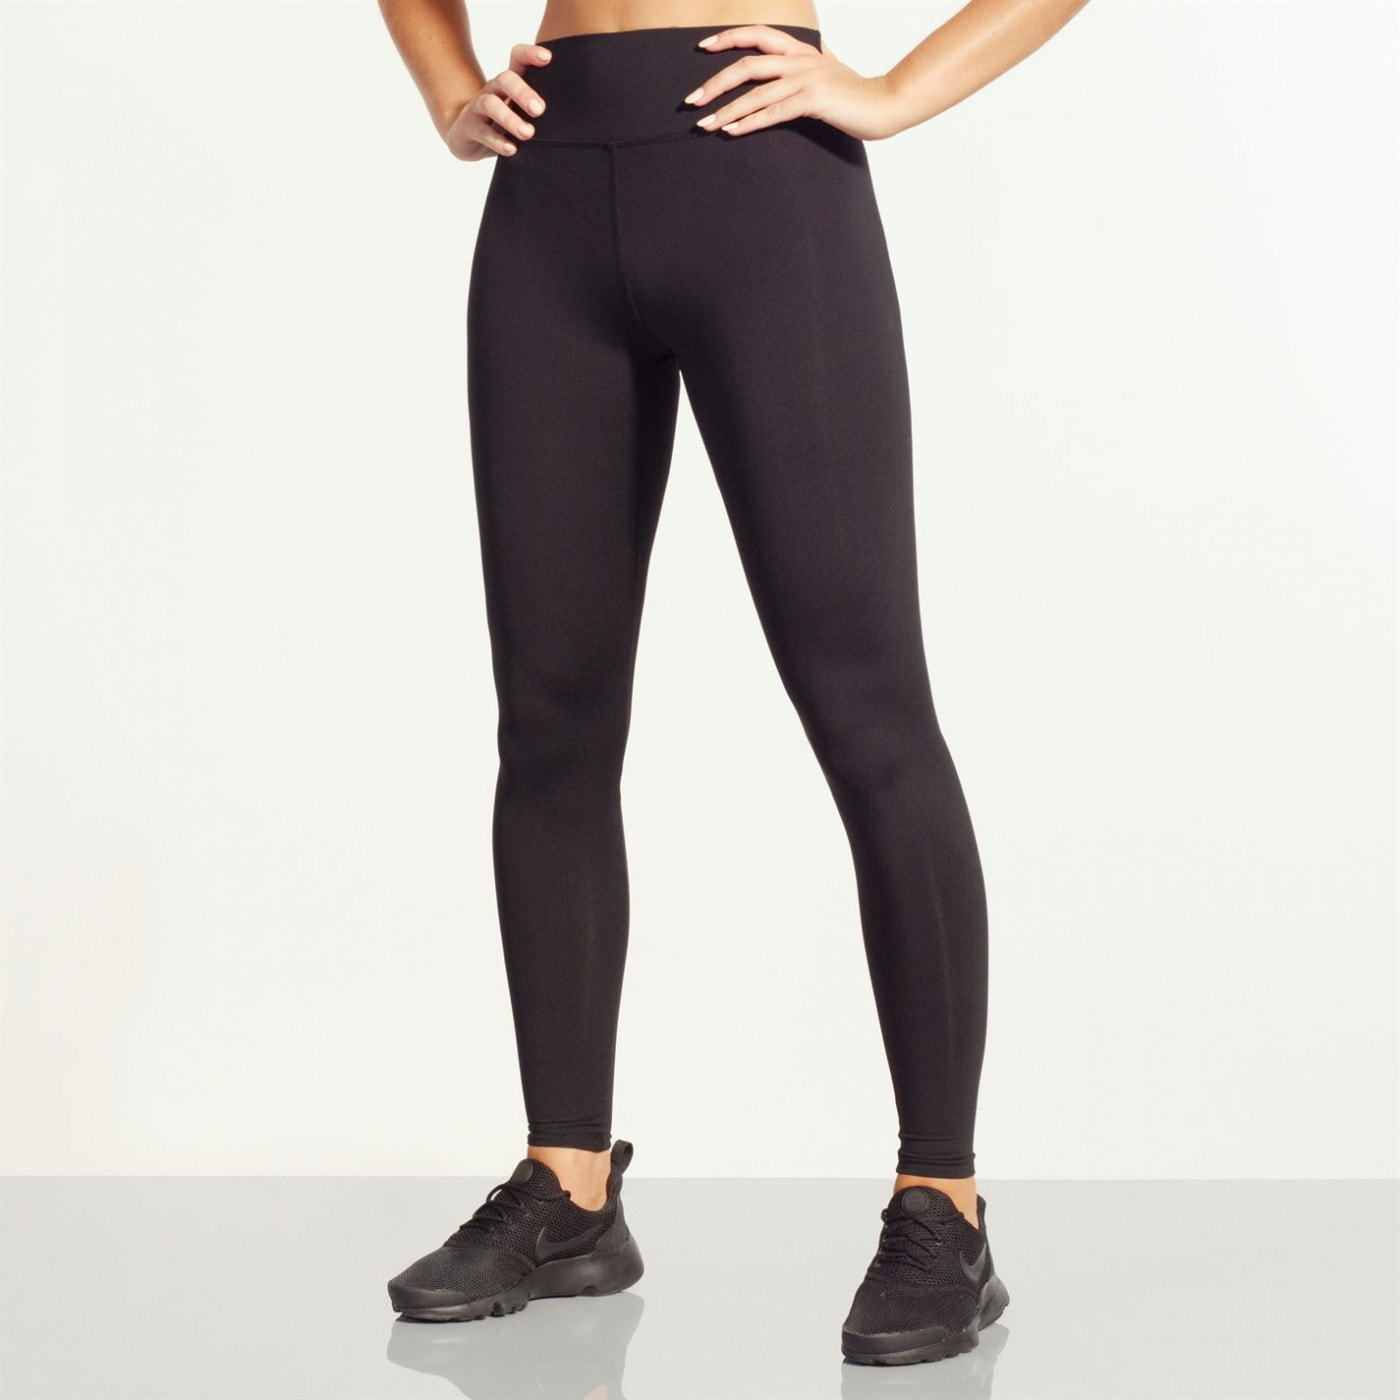 SportFX Plain Training Leggings